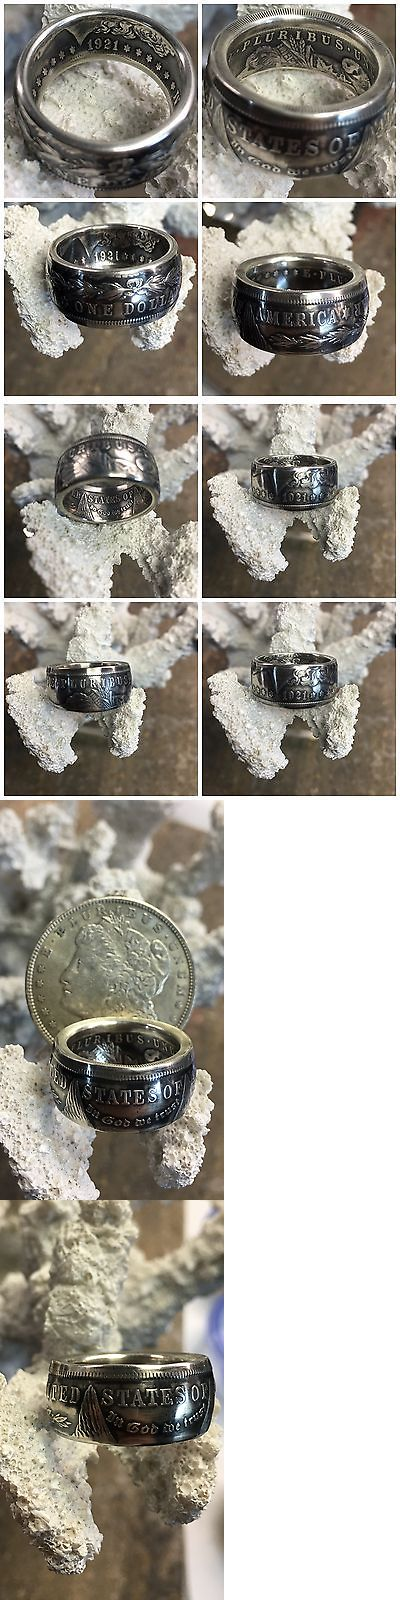 Rings 110666: American History Quality 1921 Morgan Silver Dollar Hand Crafted Coin Ring -> BUY IT NOW ONLY: $76.5 on eBay!